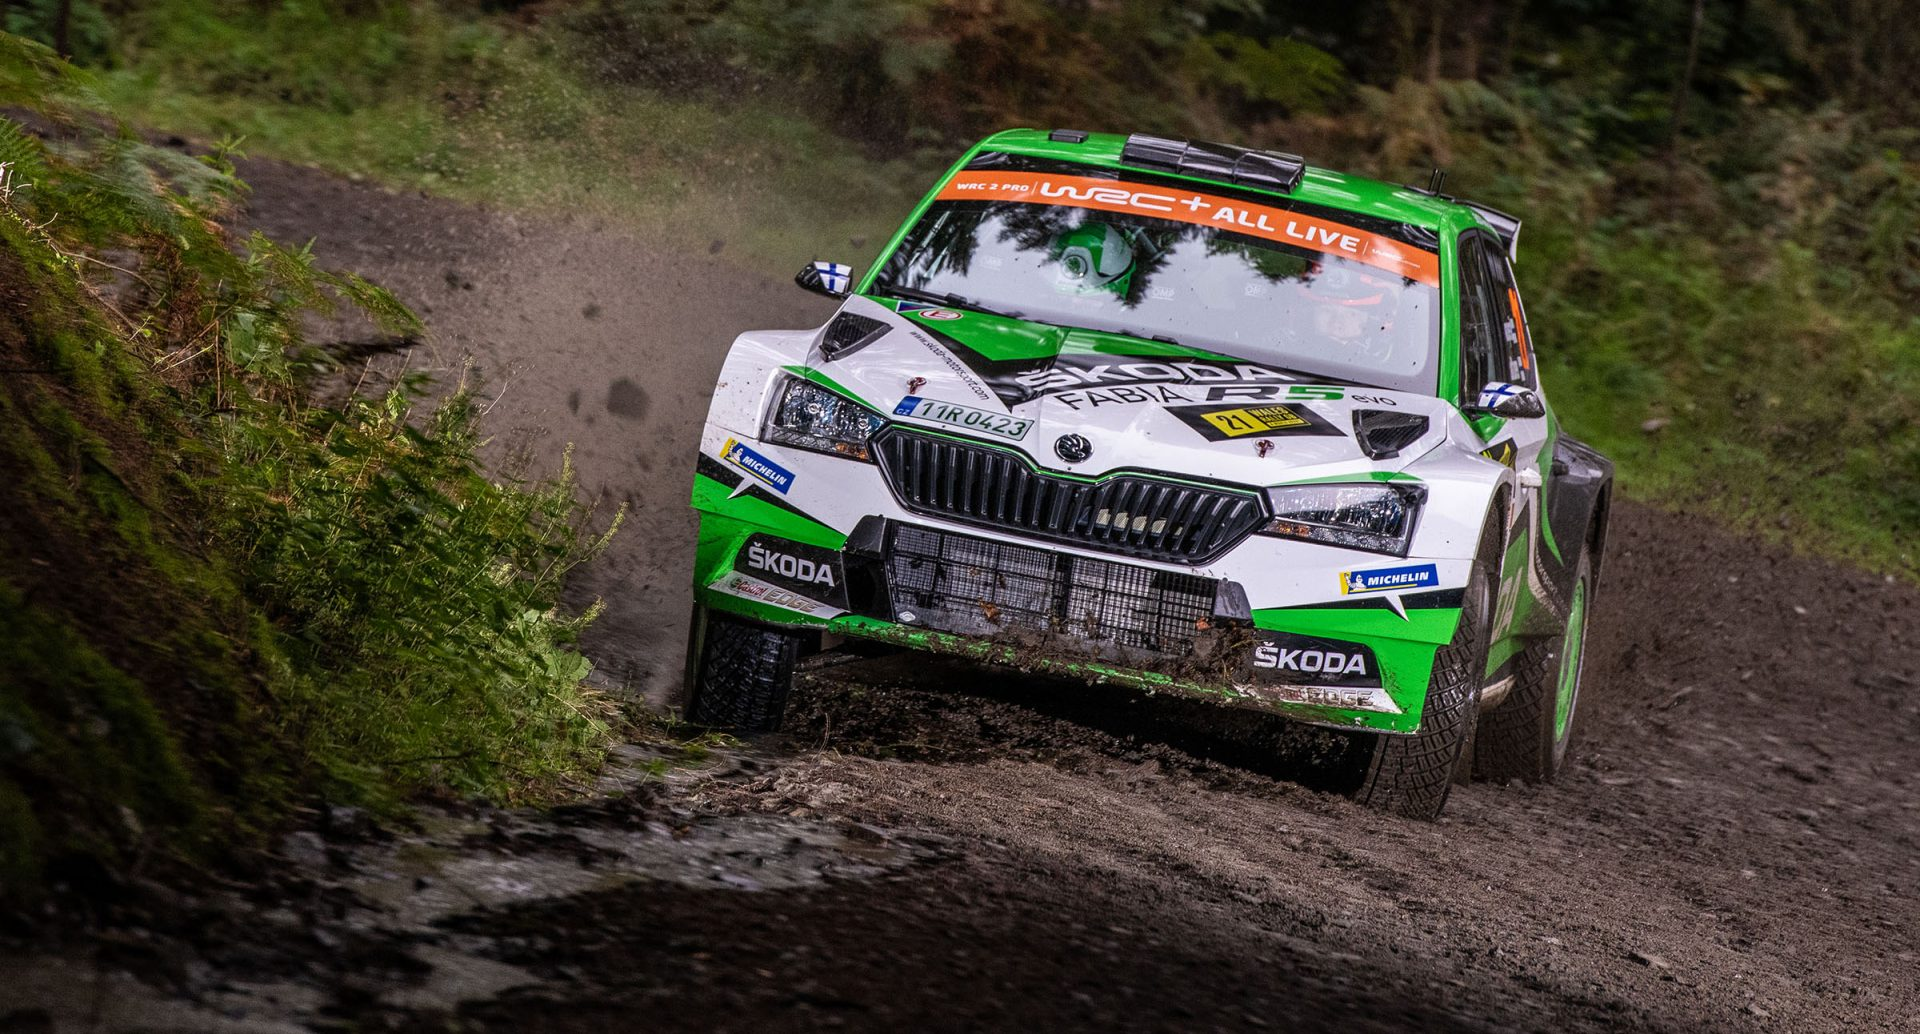 Wales Rally GB: Latest news and results